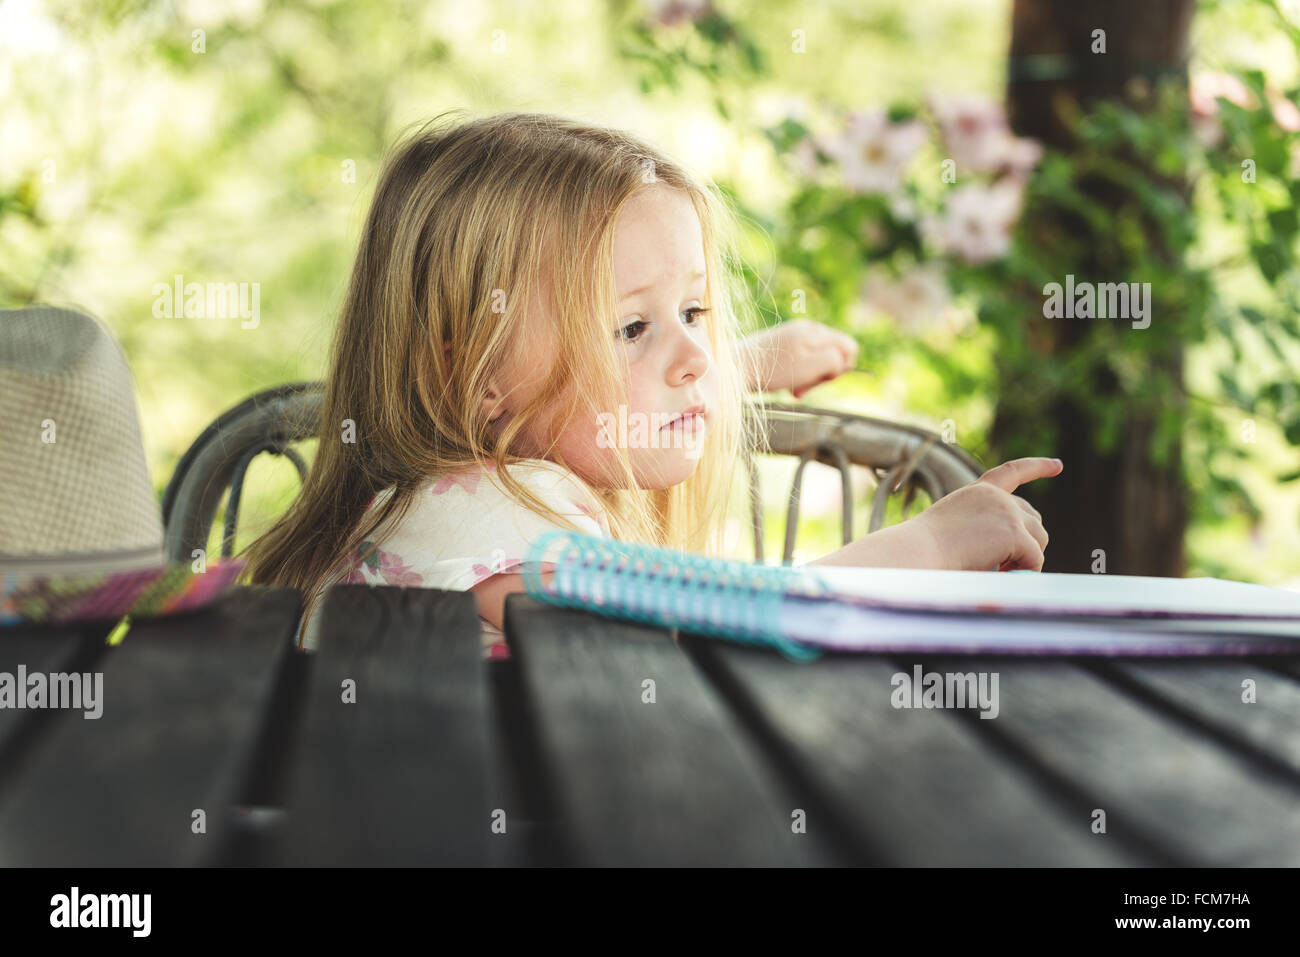 Beautiful blond girl in the garden at sunny summer day - Stock Image